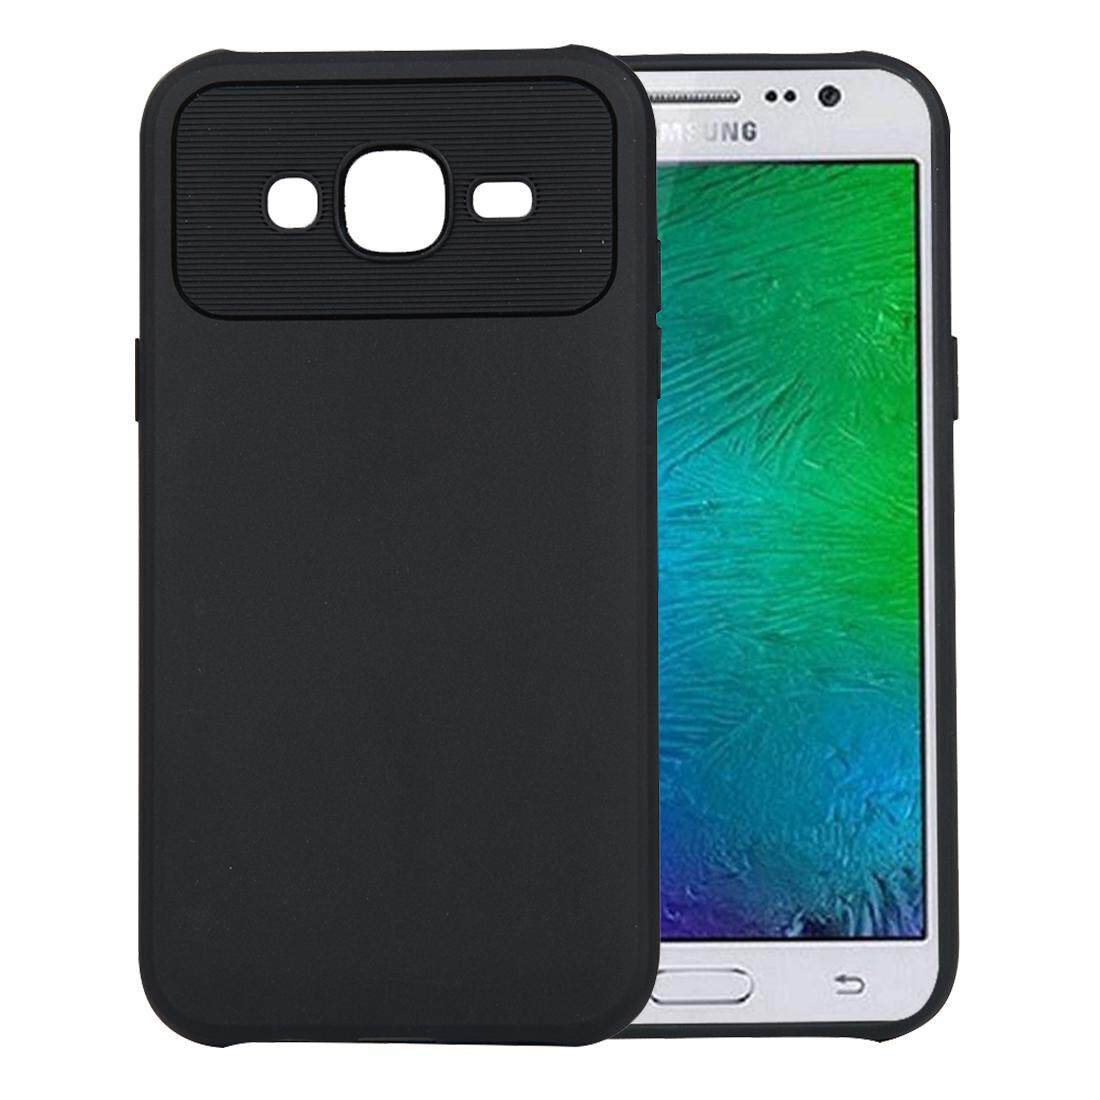 For Samsung Galaxy J5/J5 2015 Casing,Light Shockproof Cover Slim Fit Shell Soft